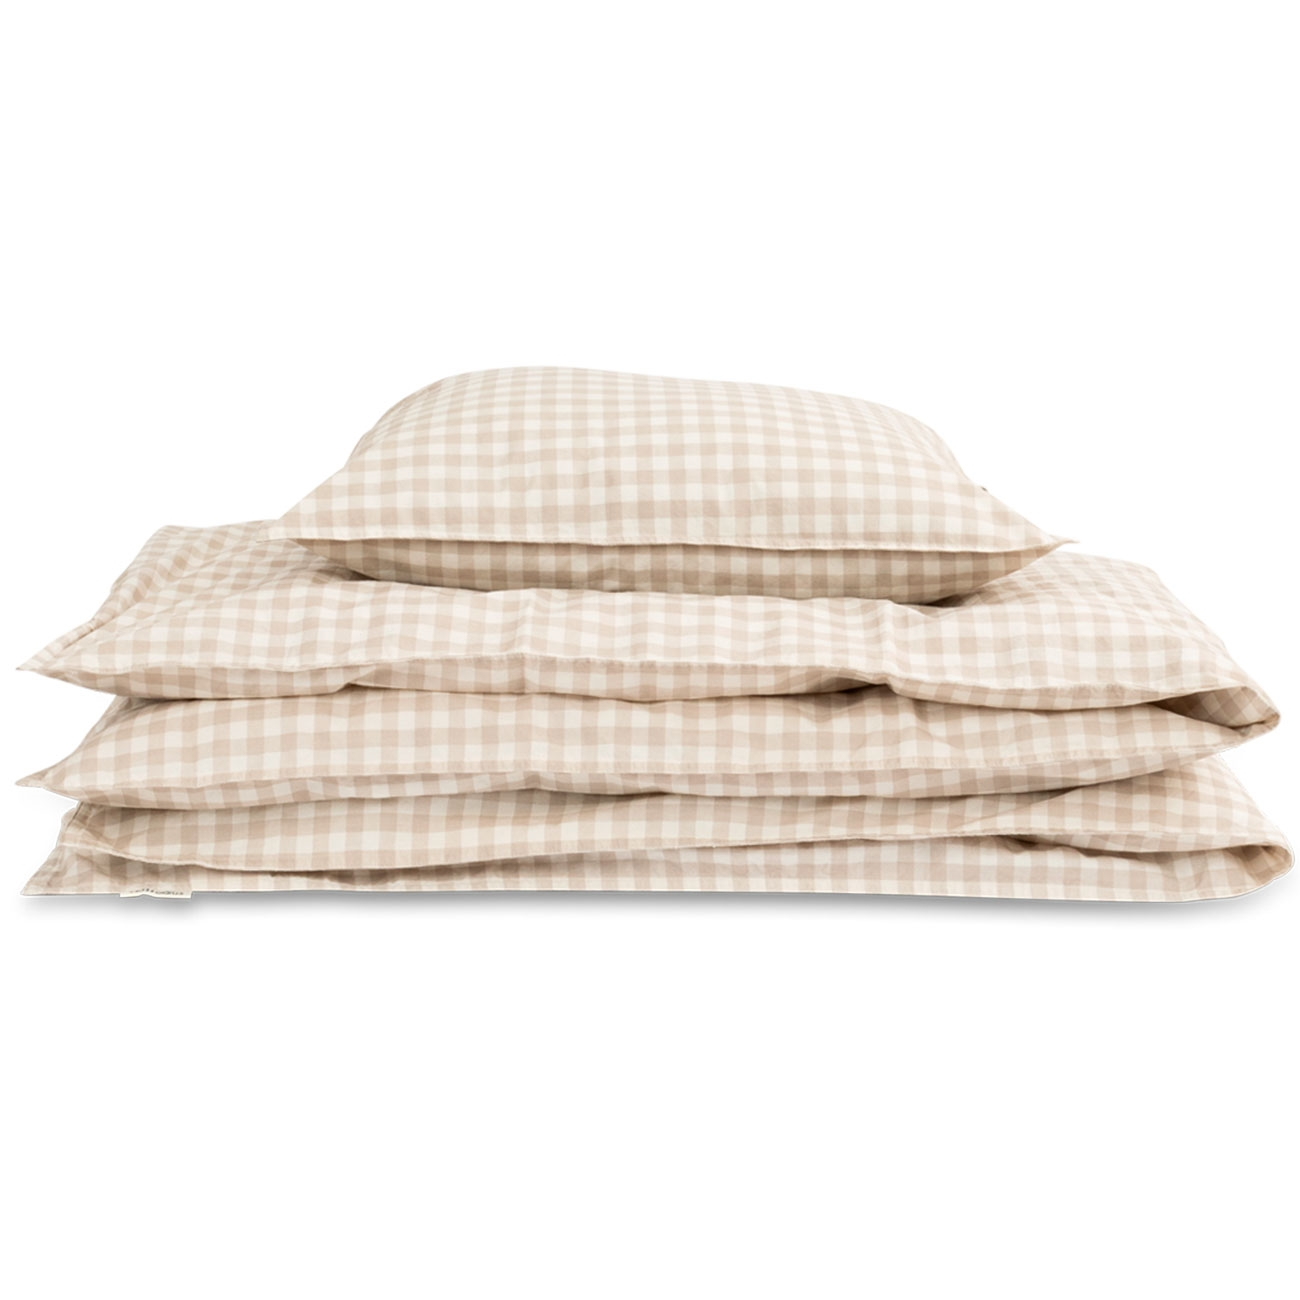 Picture of: Studio Feder Bedding Gingham Oat